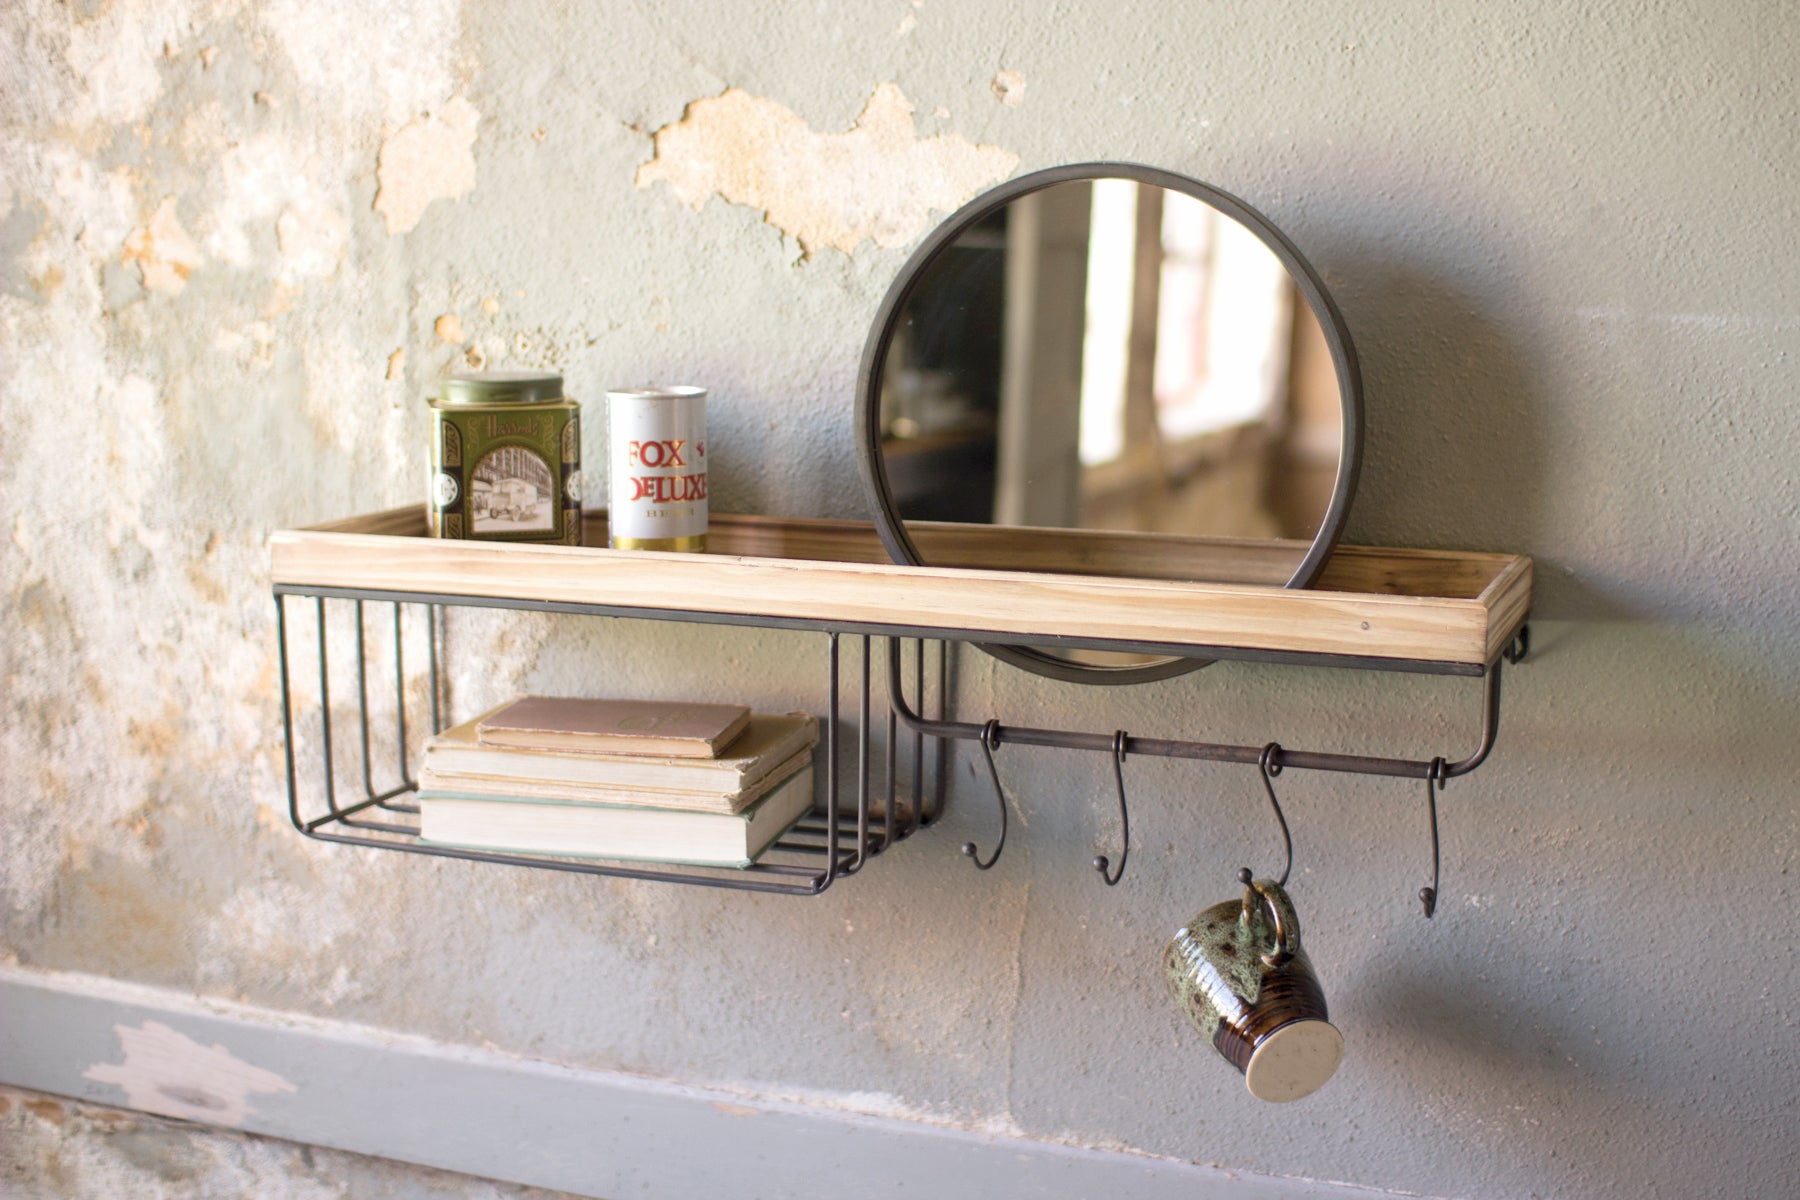 Floating Rustic Wood and Iron Mirror Shelf With Storage Basket and Hooks